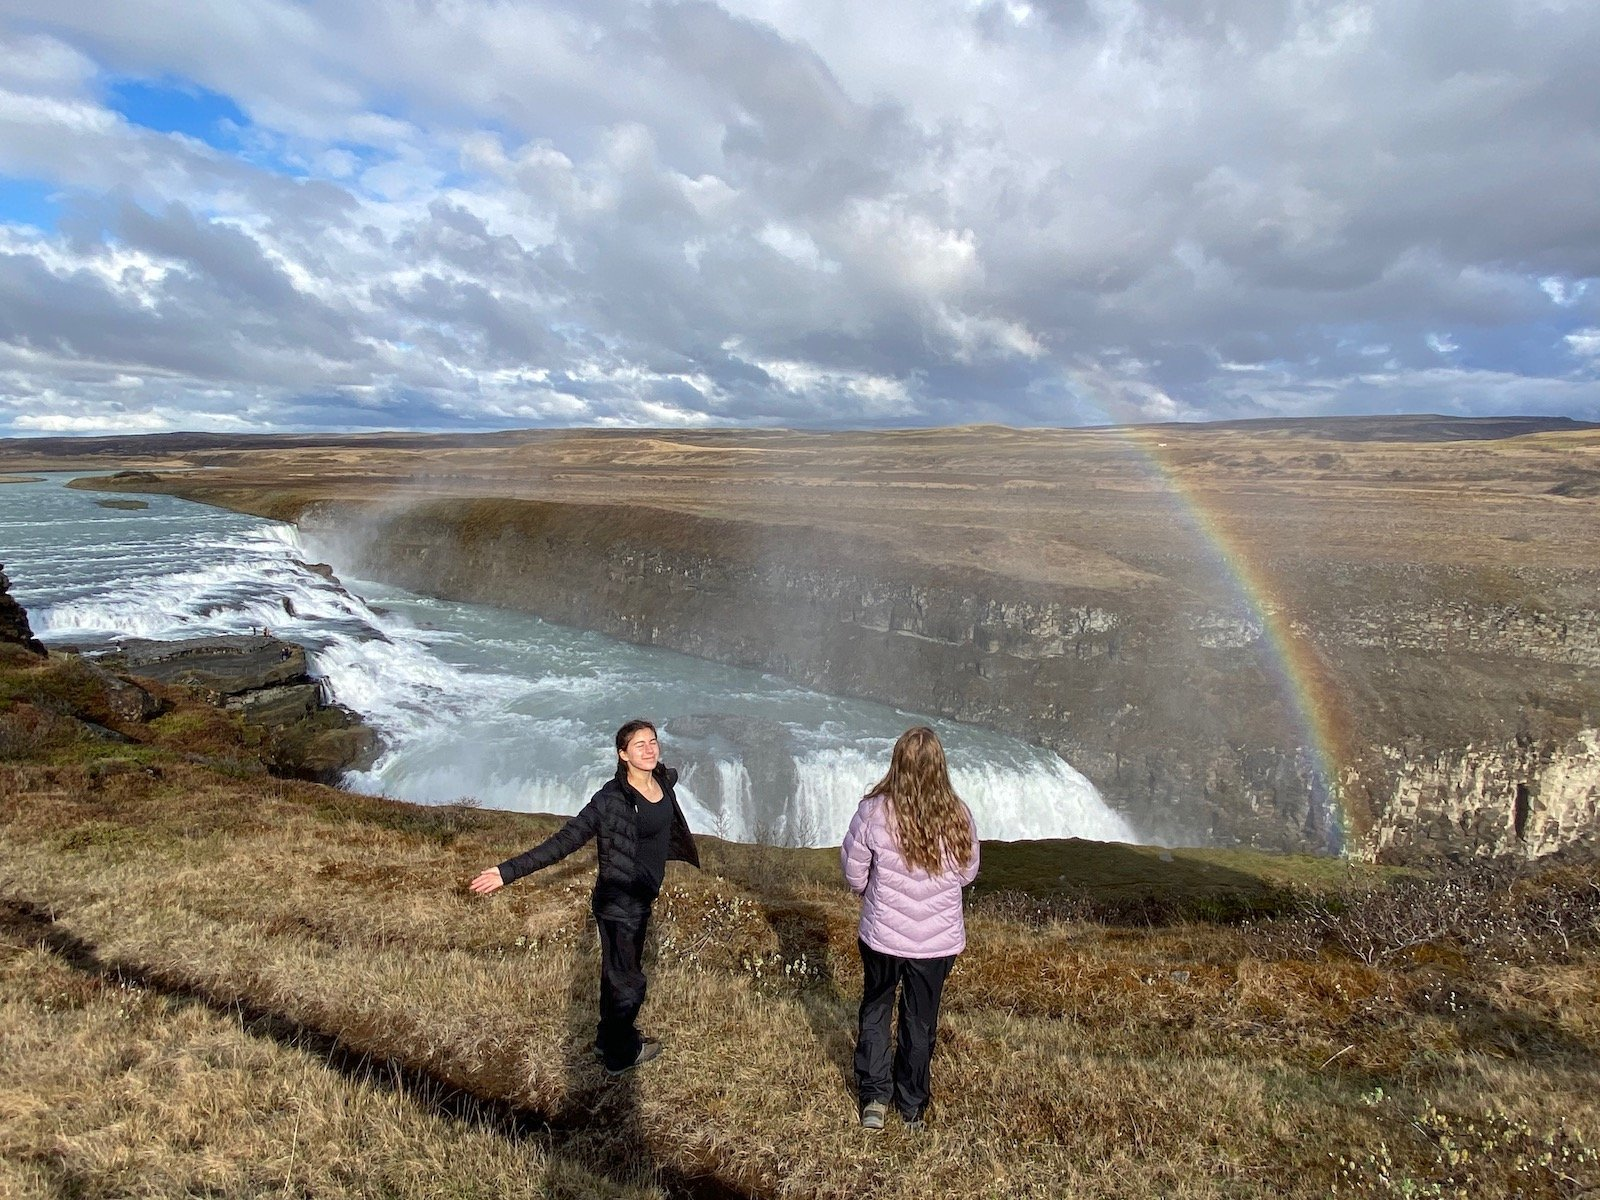 Sisters enjoying the scenic view at Gullfoss Falls on the Golden Circle in Iceland.